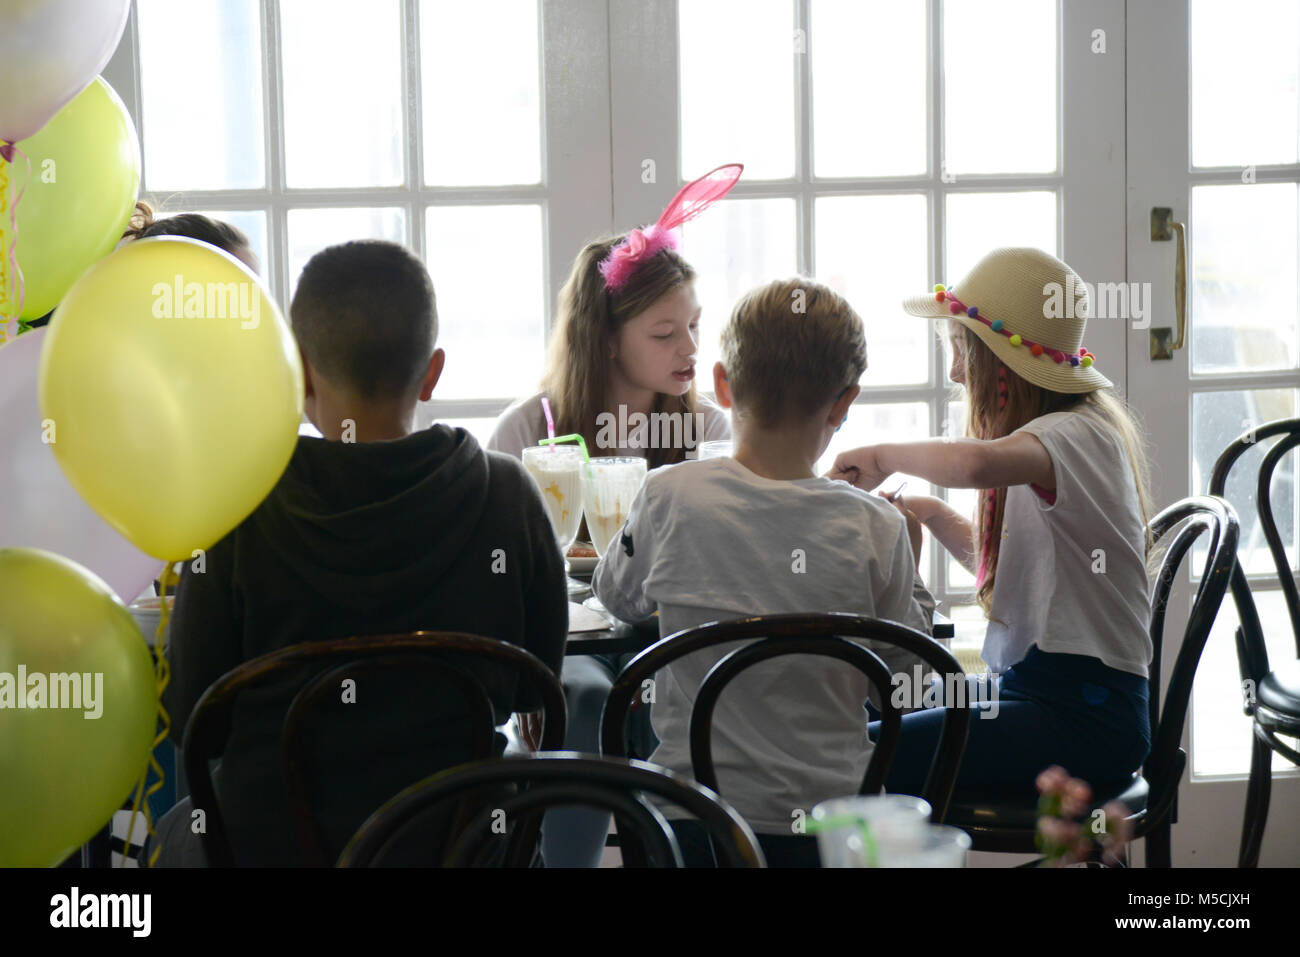 Four young children are sitting at a party table eating fried food and drinking milkshakes- there are balloons and - Stock Image